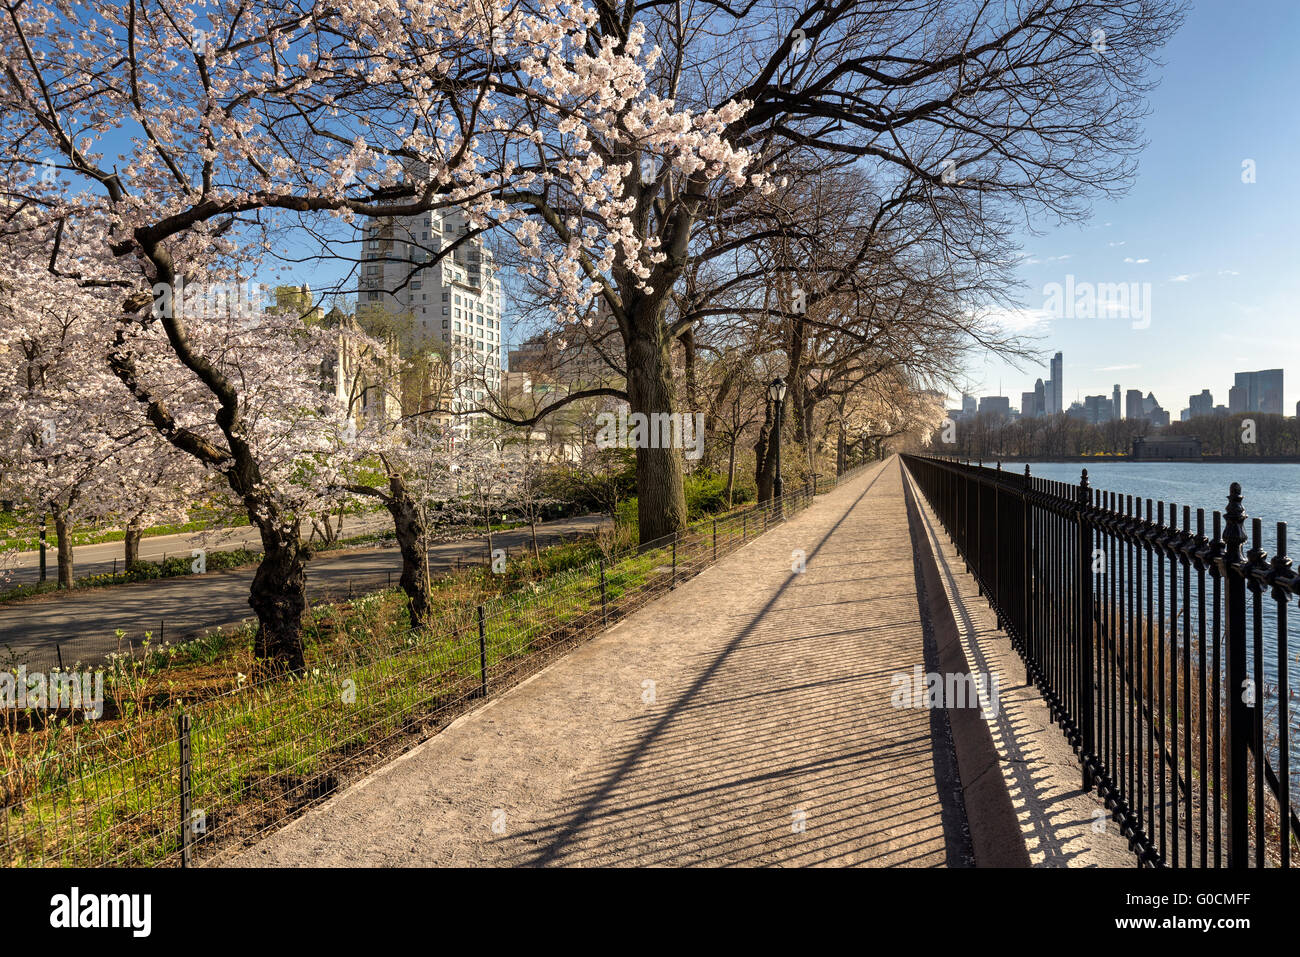 Spring in Central Park on the Shuman Running Track with Yoshino Cherry trees in bloom. Upper East Side, Manhattan, - Stock Image